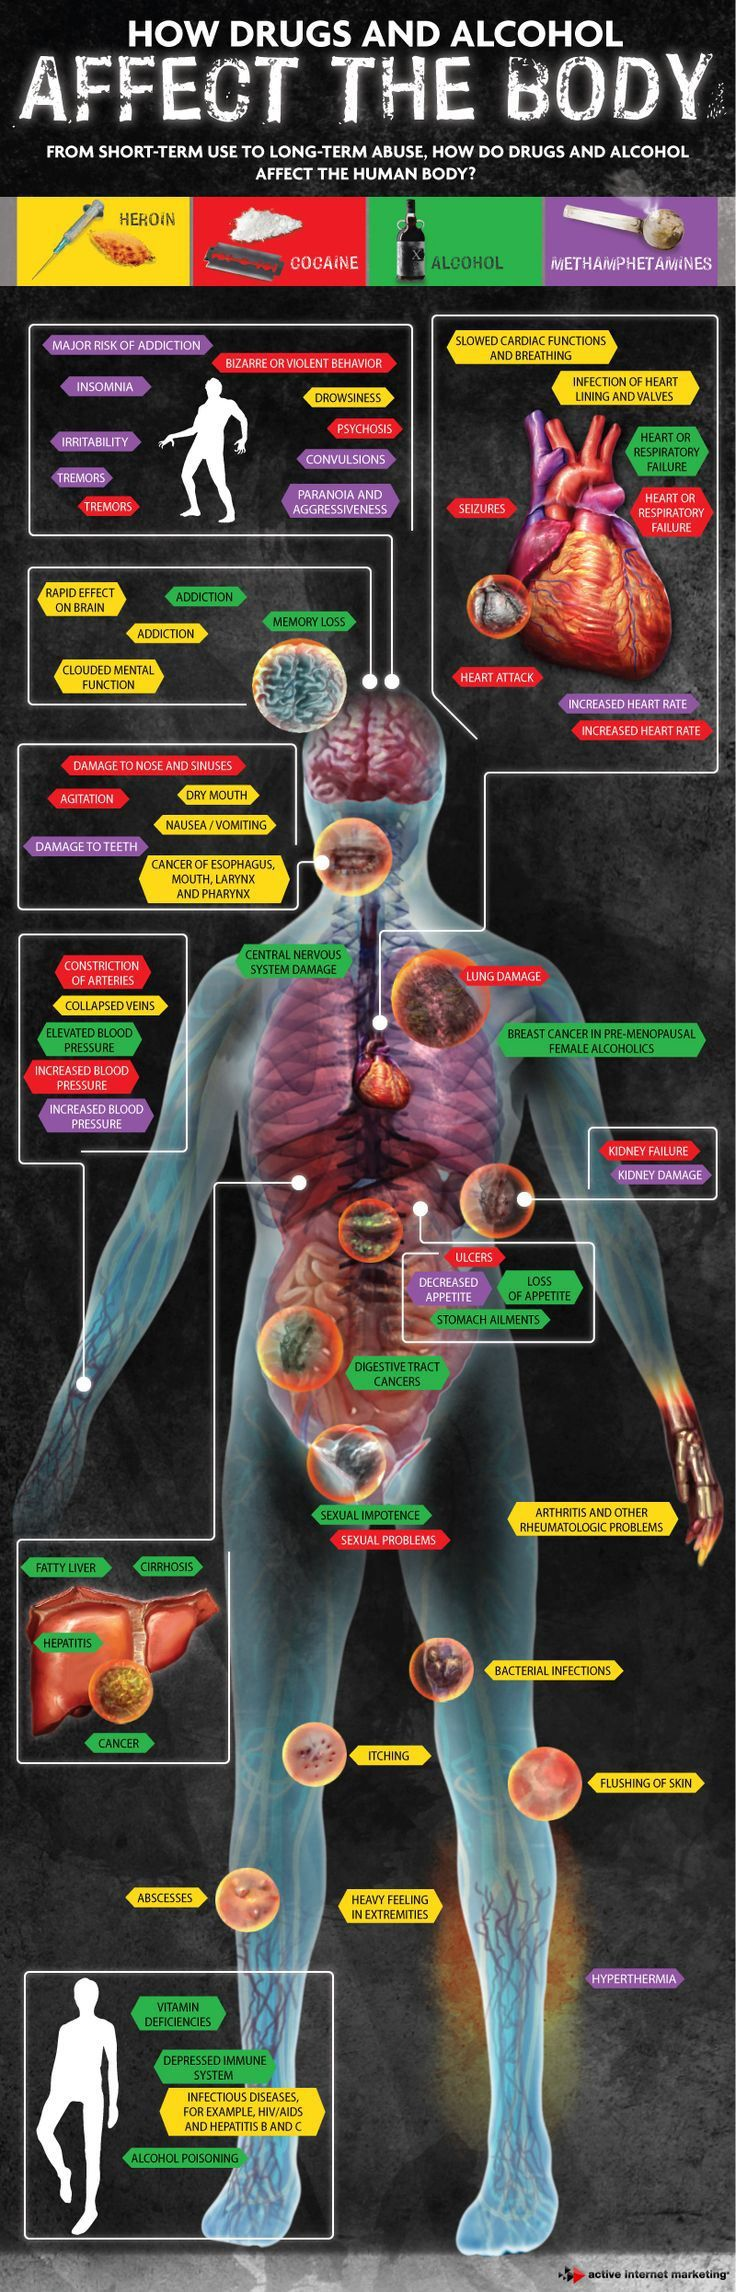 effect of alcohol and other drugs Tobacco, drugs & alcohol drinking, and doing drugs can really effect peoples' lives abuse of other drugs death from alcohol poisoning.